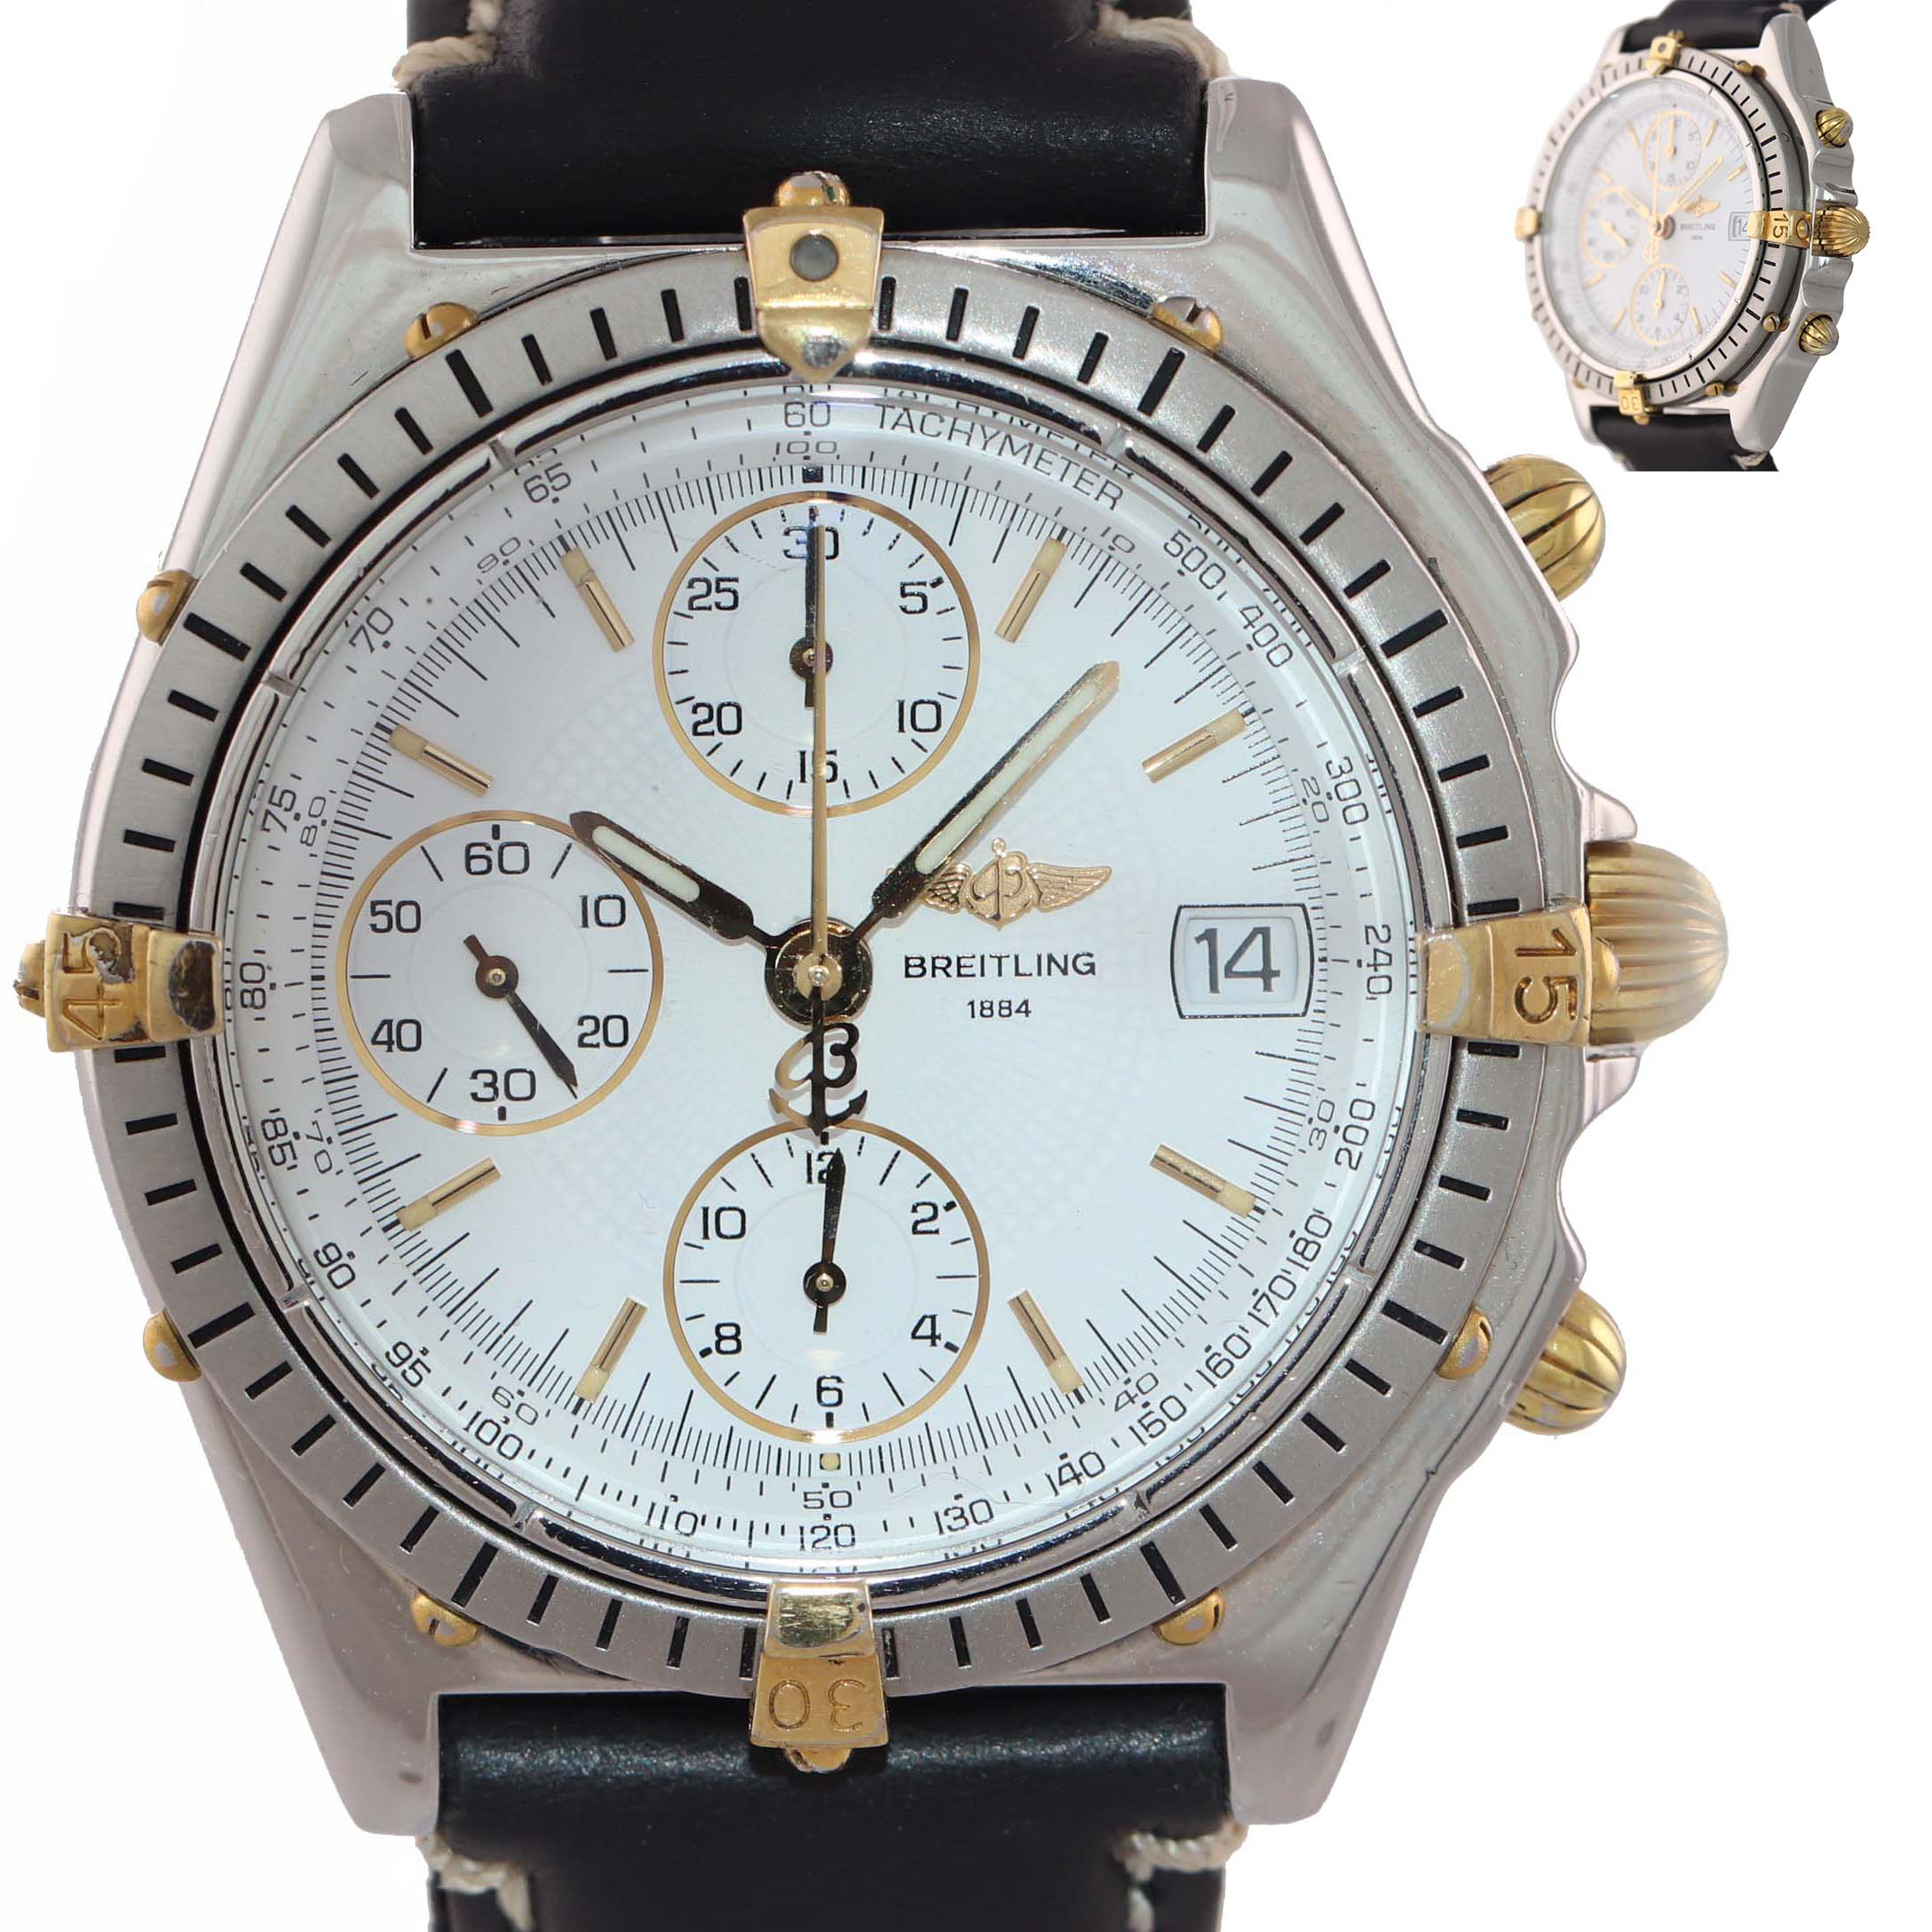 Breitling Chronomat Gold Steel 40mm Chronograph White Date Two Tone Watch B13050